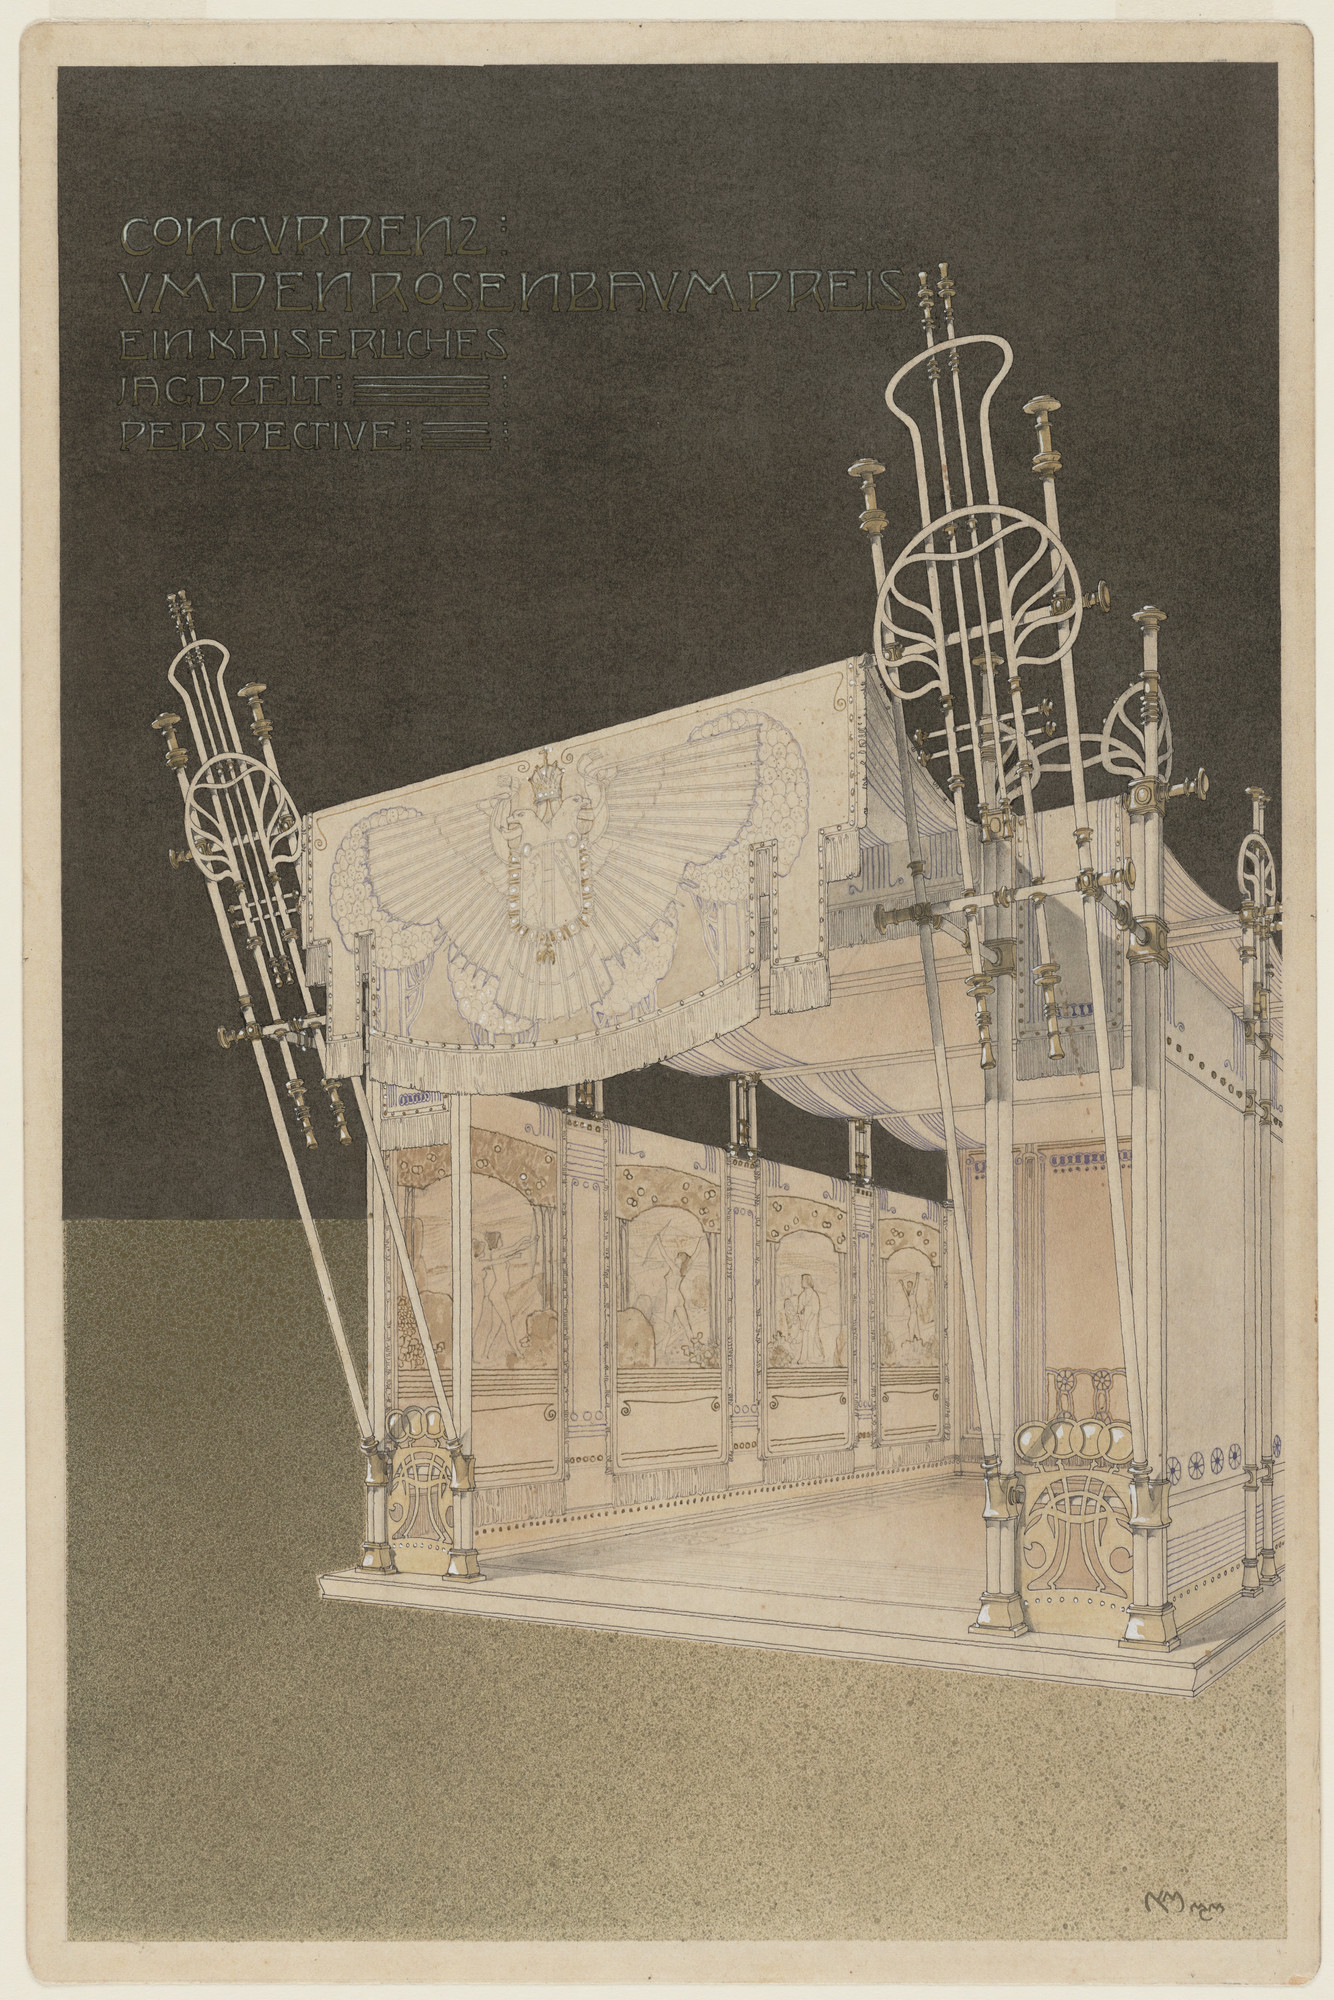 Marcel Kammerer. Royal Hunting Tent, project, Exterior perspective. 1900